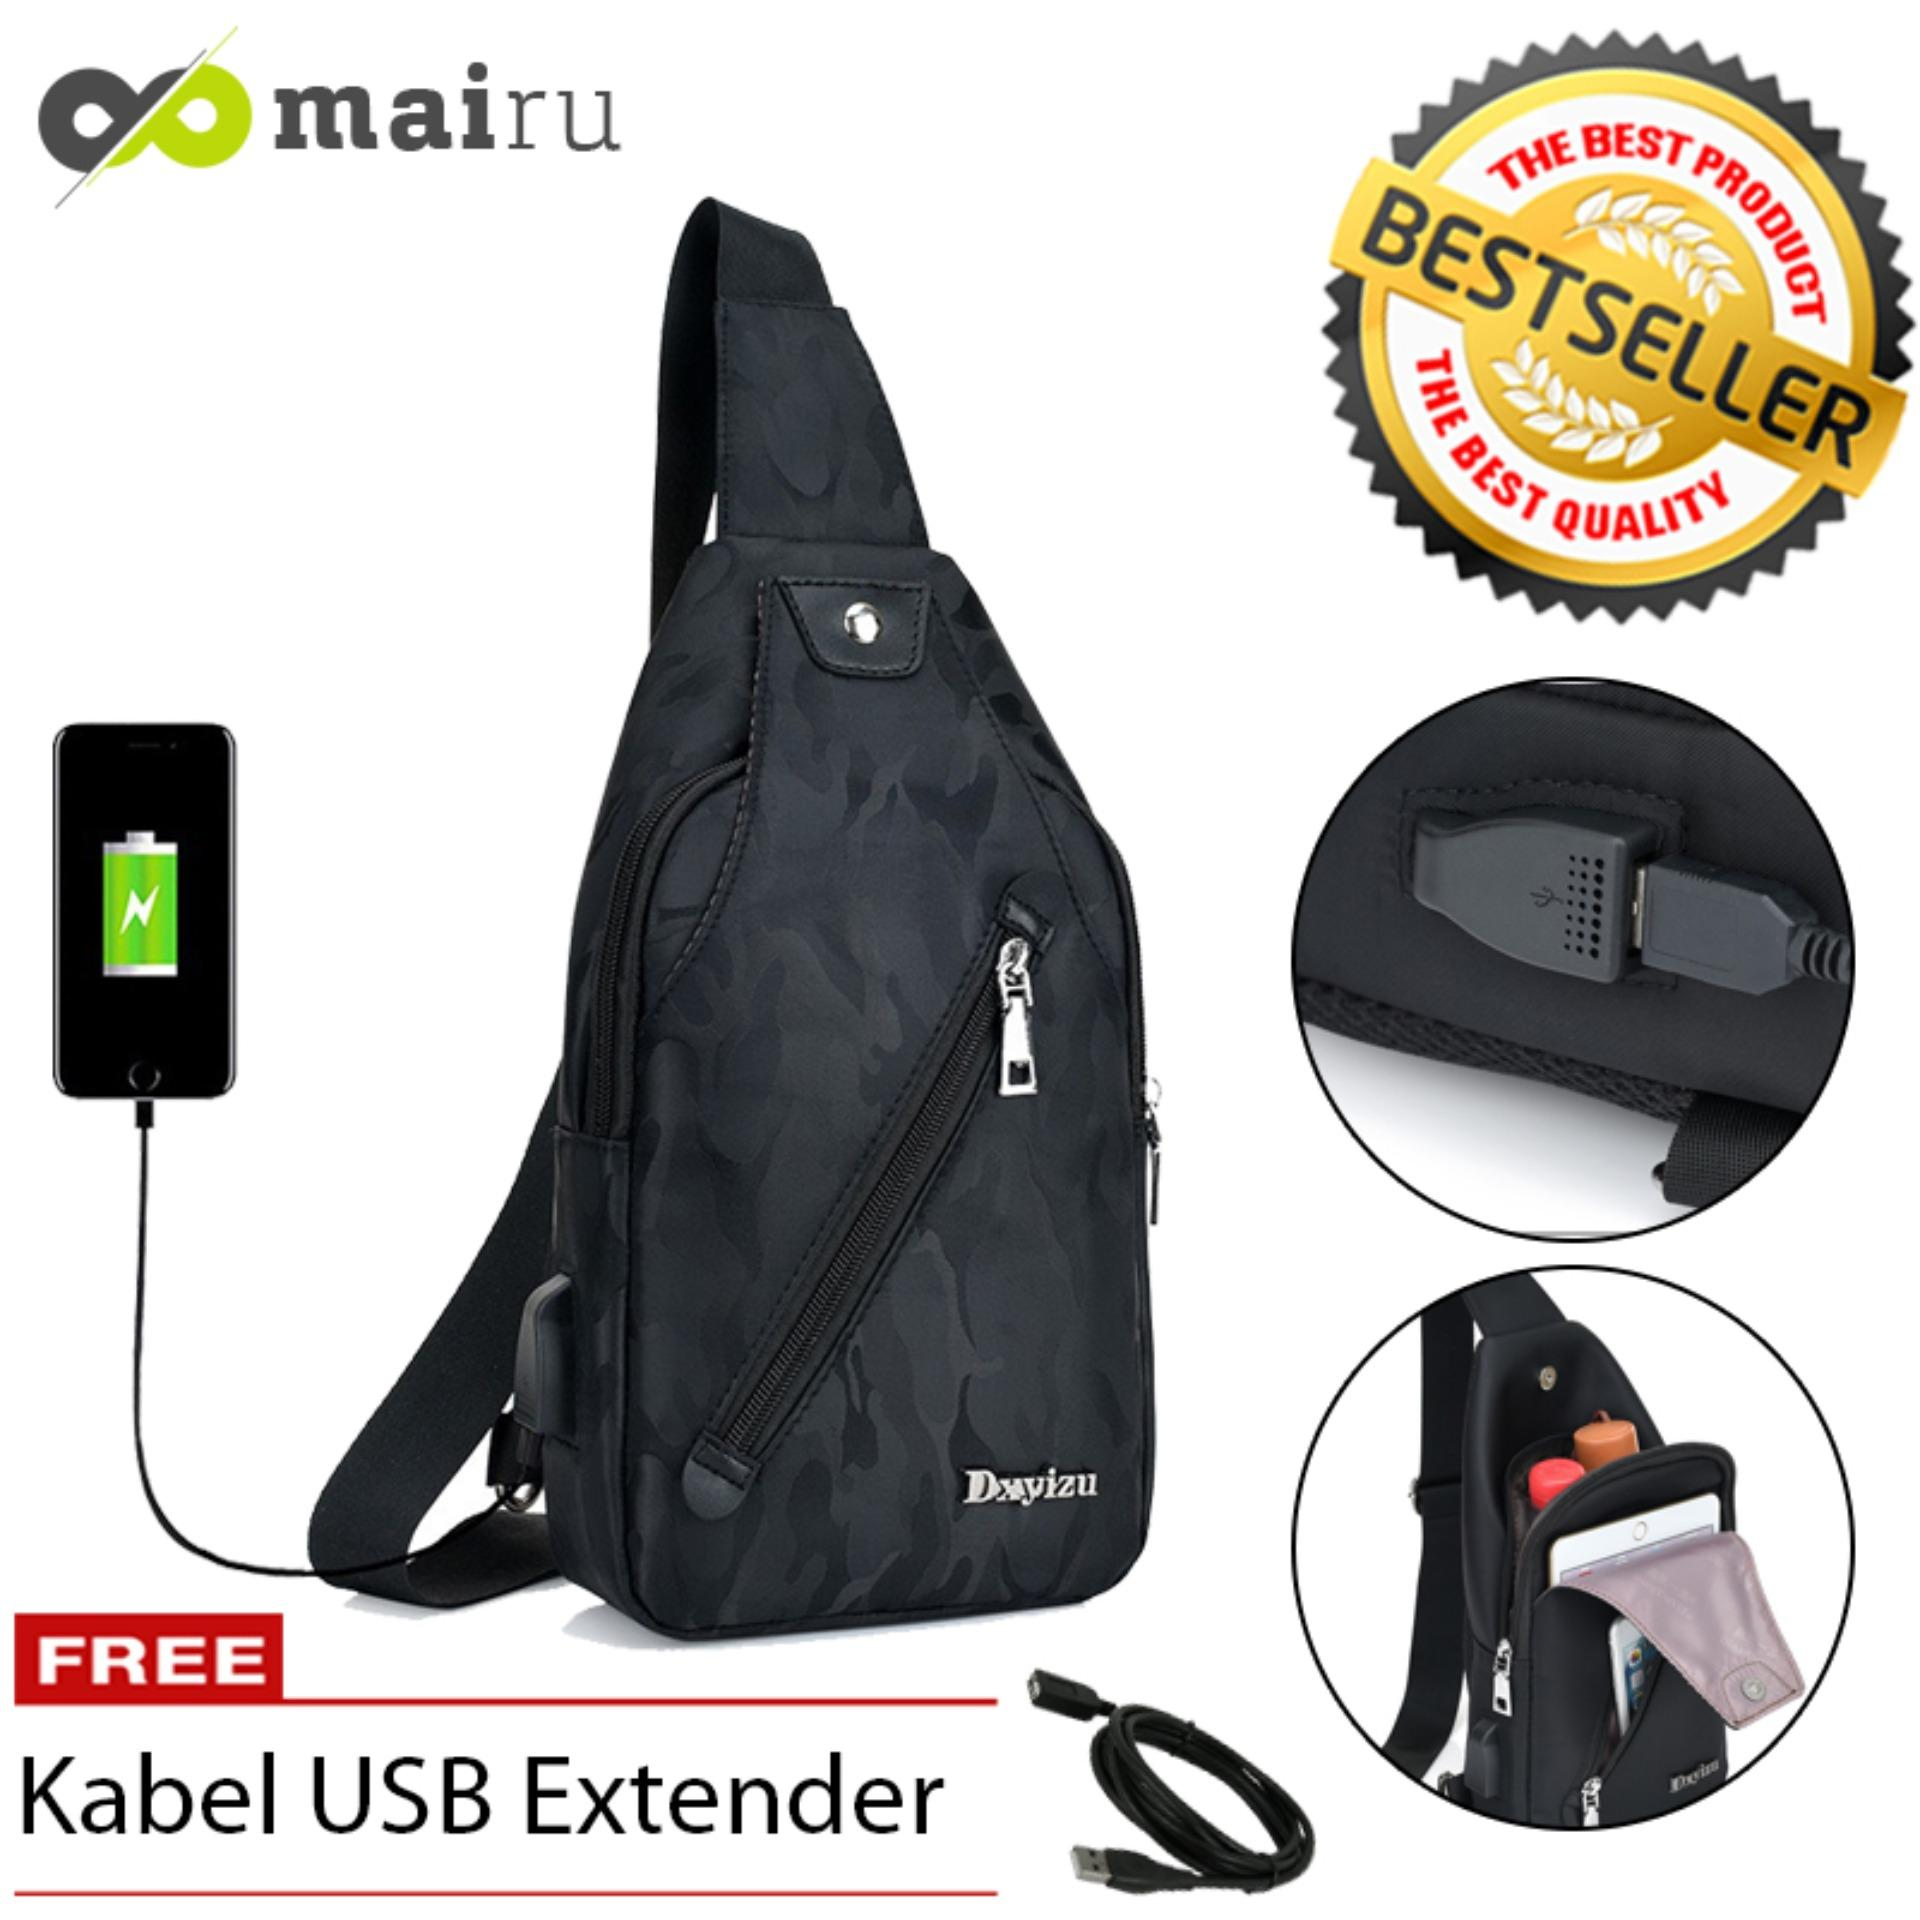 Ulasan Lengkap Mairu Dxyizu 533 Tas Selempang Pria Sling Bag Cross Body With Usb Charger Support For Iphone Ipad Mini Xiaomi Samsung Tab Tablet 8 Anti Theft